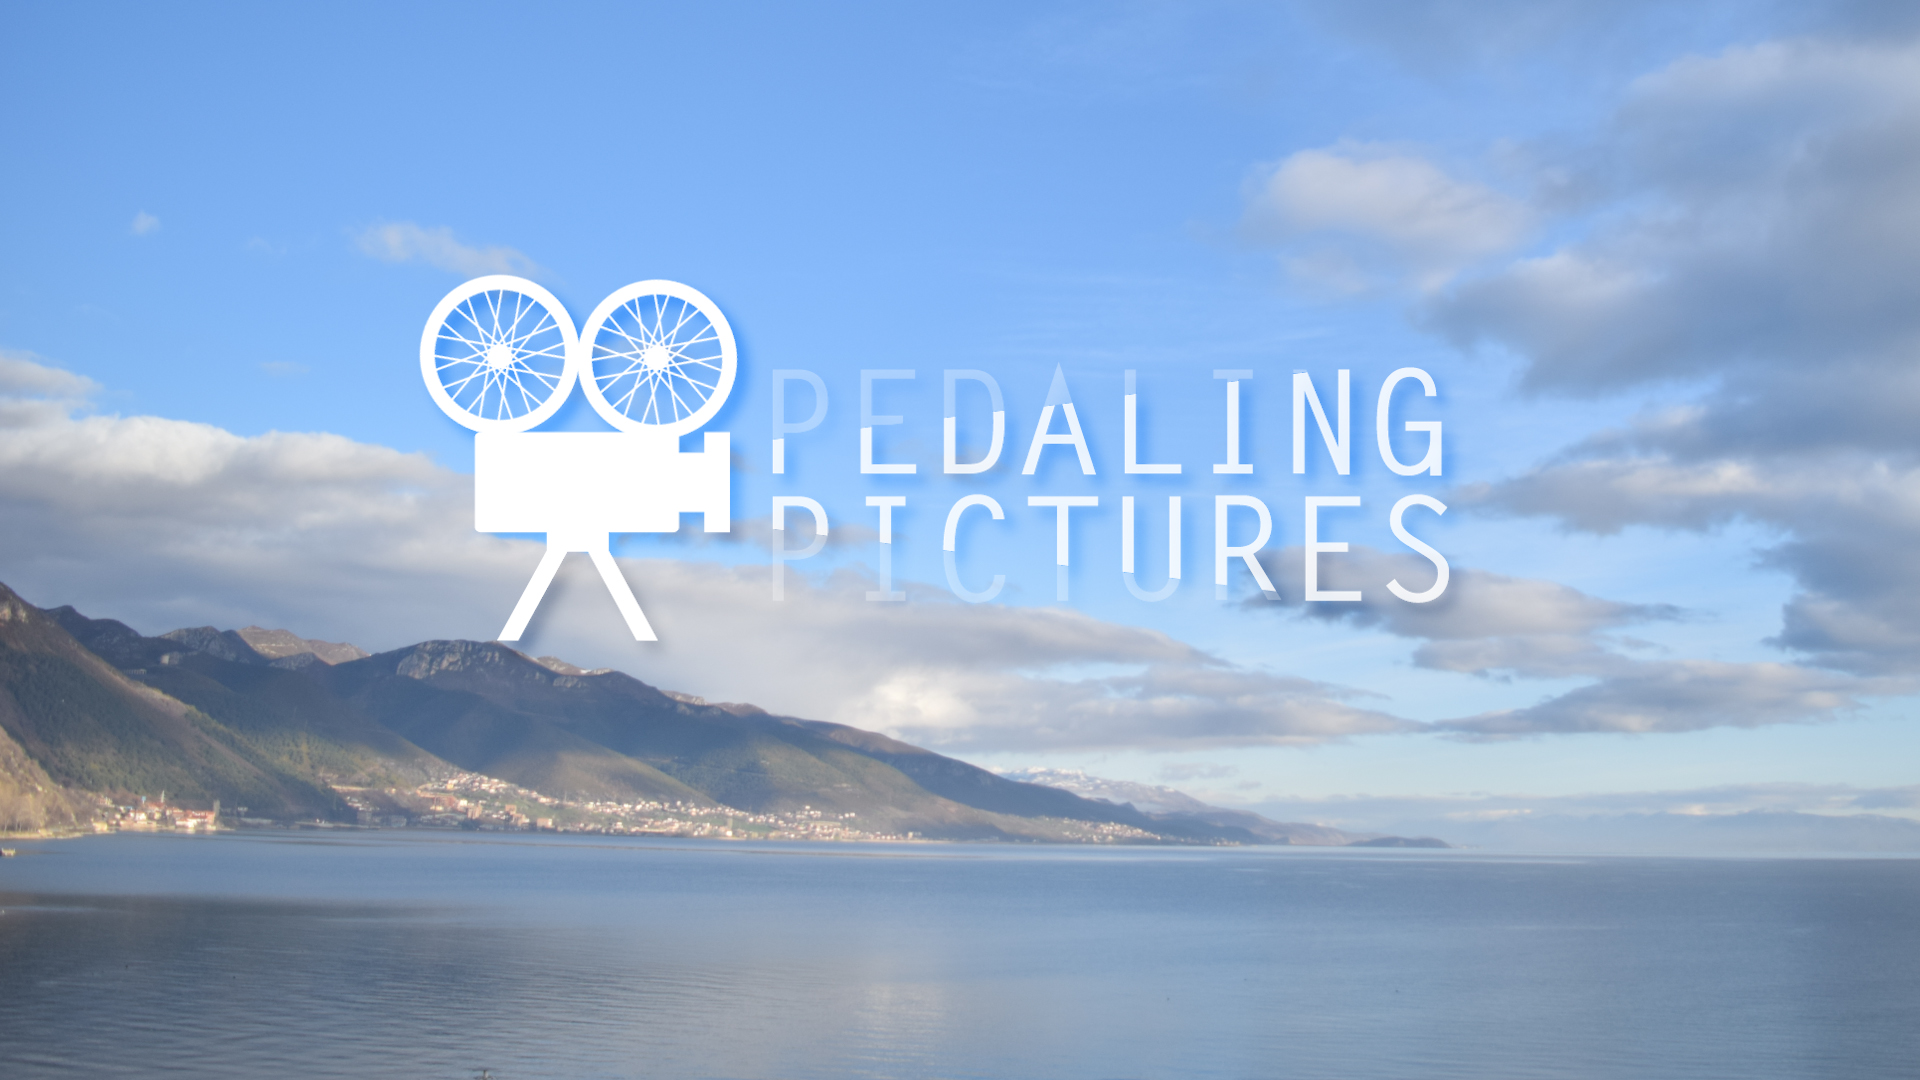 Pedaling Pictures Reel 2019